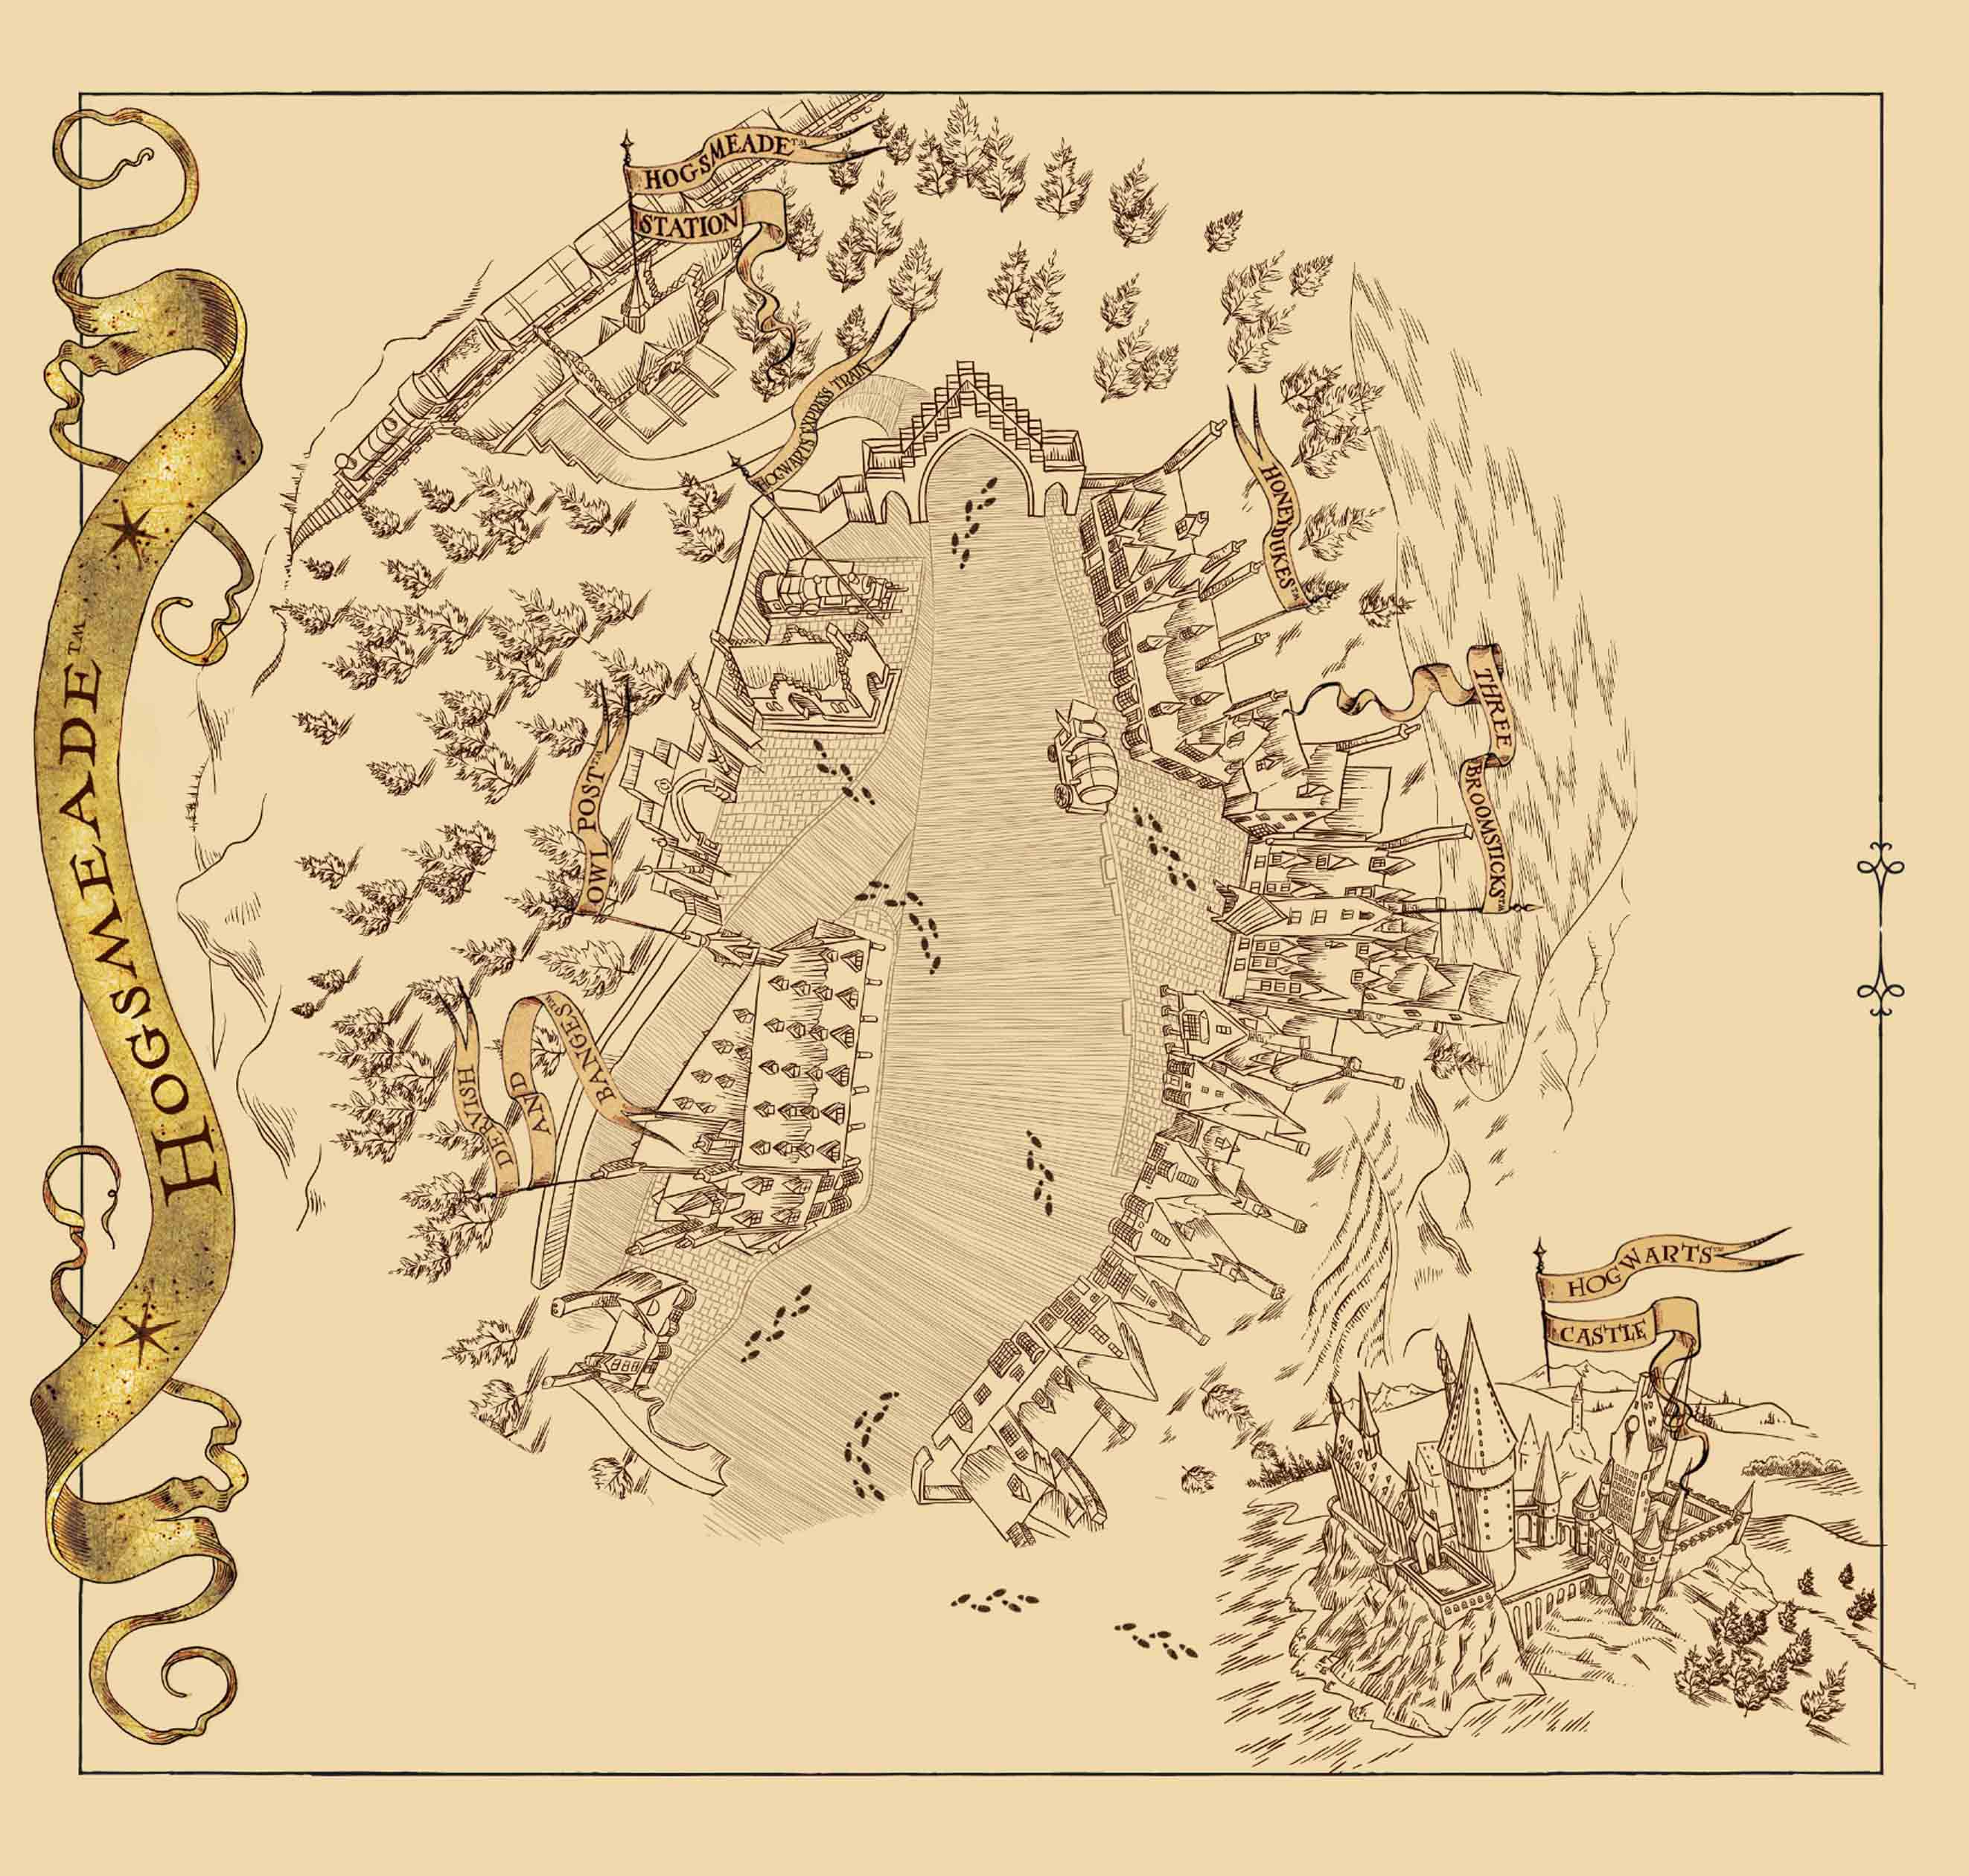 The-Wizarding-World-of-Harry-Potter-Hogsmeade-Scavenger-Hunt-Map ...